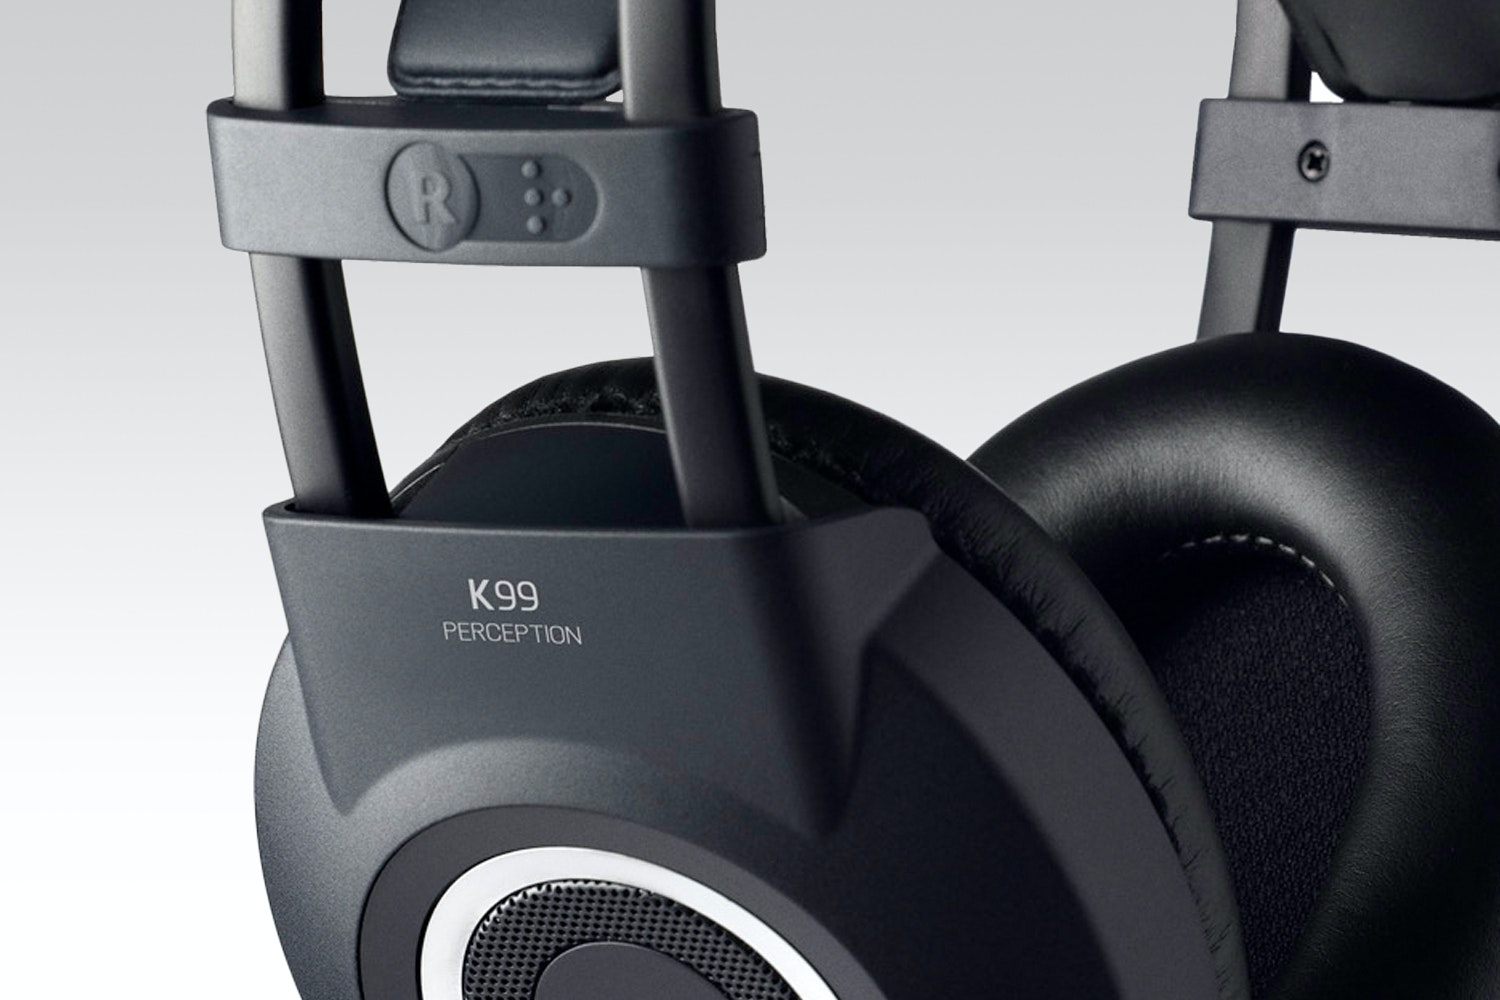 AKG K99 Entry Level Audiophile Headphones